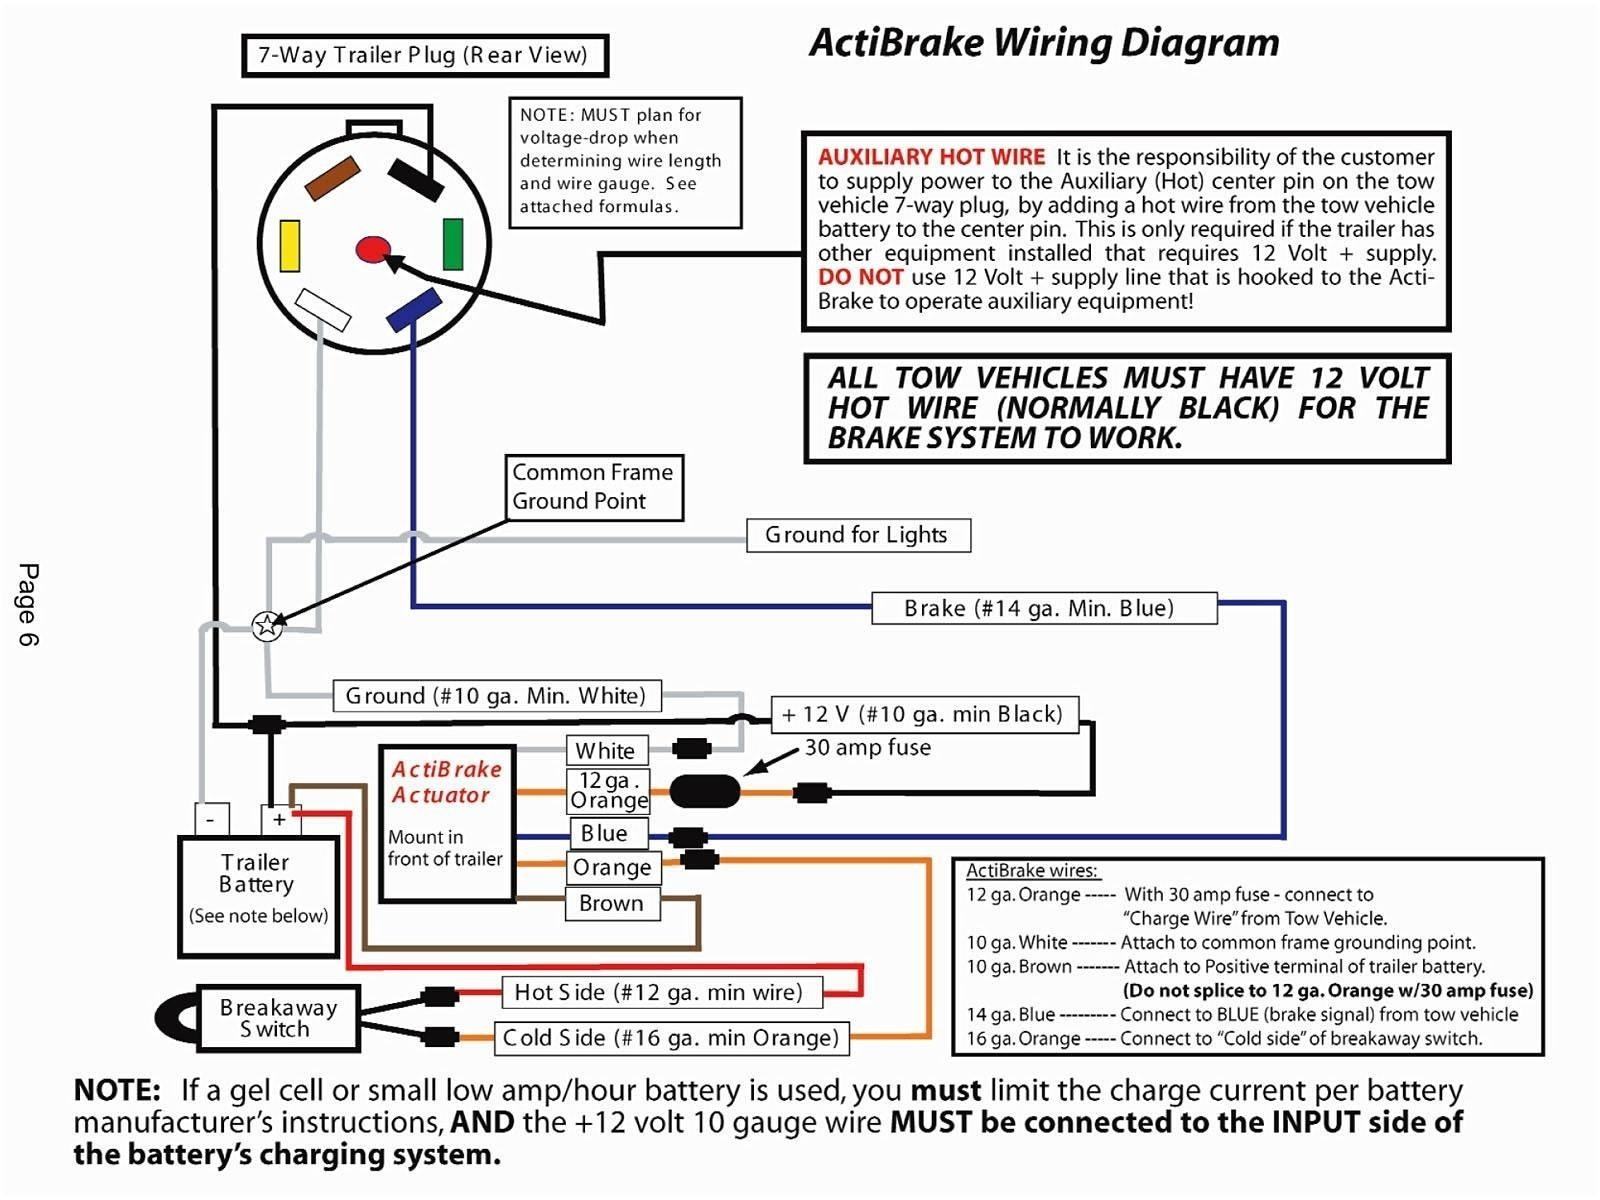 Get Tow Vehicle Wiring Diagram Download Wall Socket Together With Electrical Ground Wire